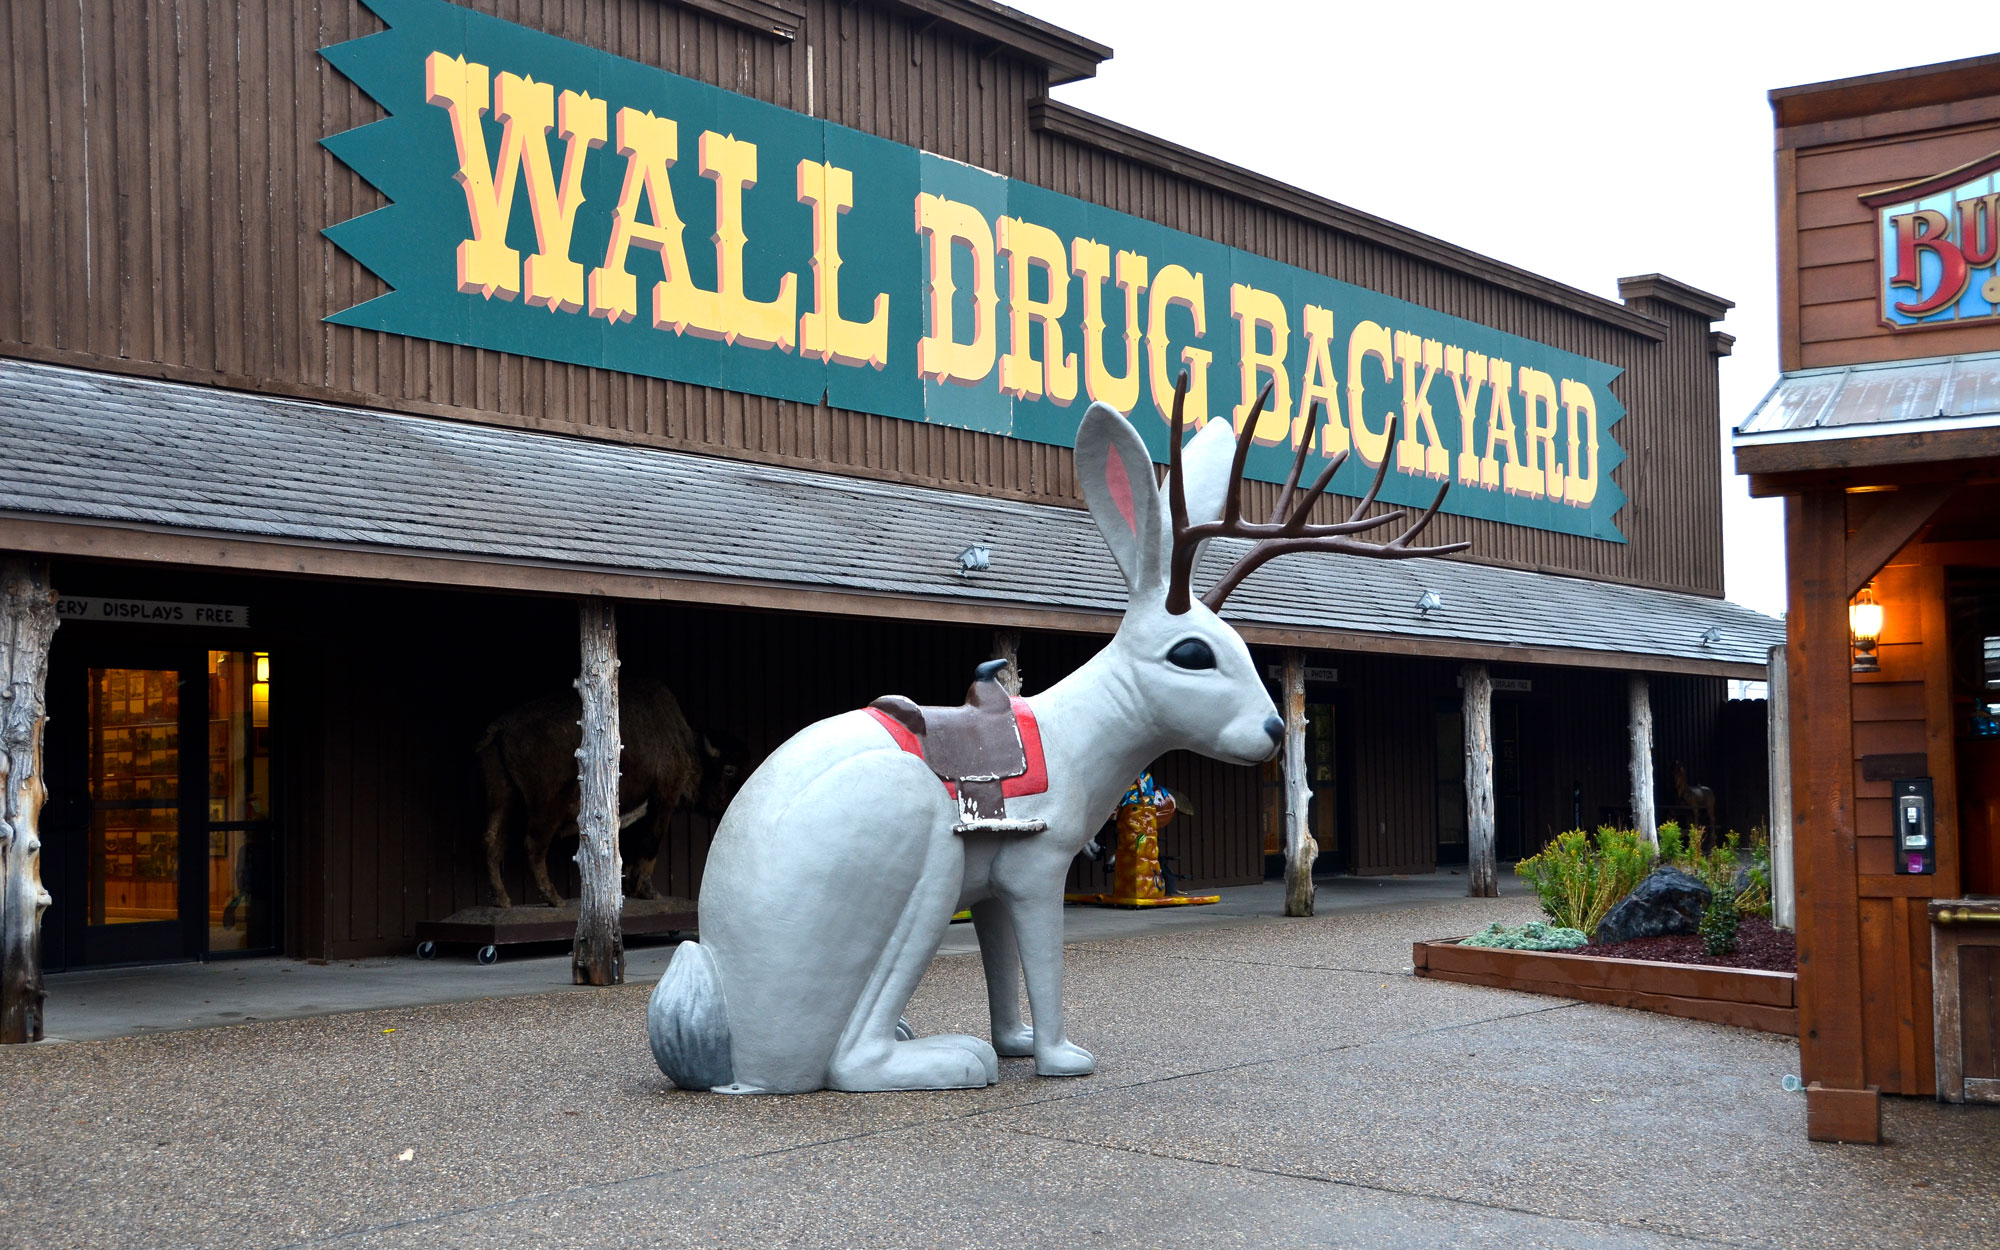 Weirdest Roadside Attractions: South Dakota: Wall Drug